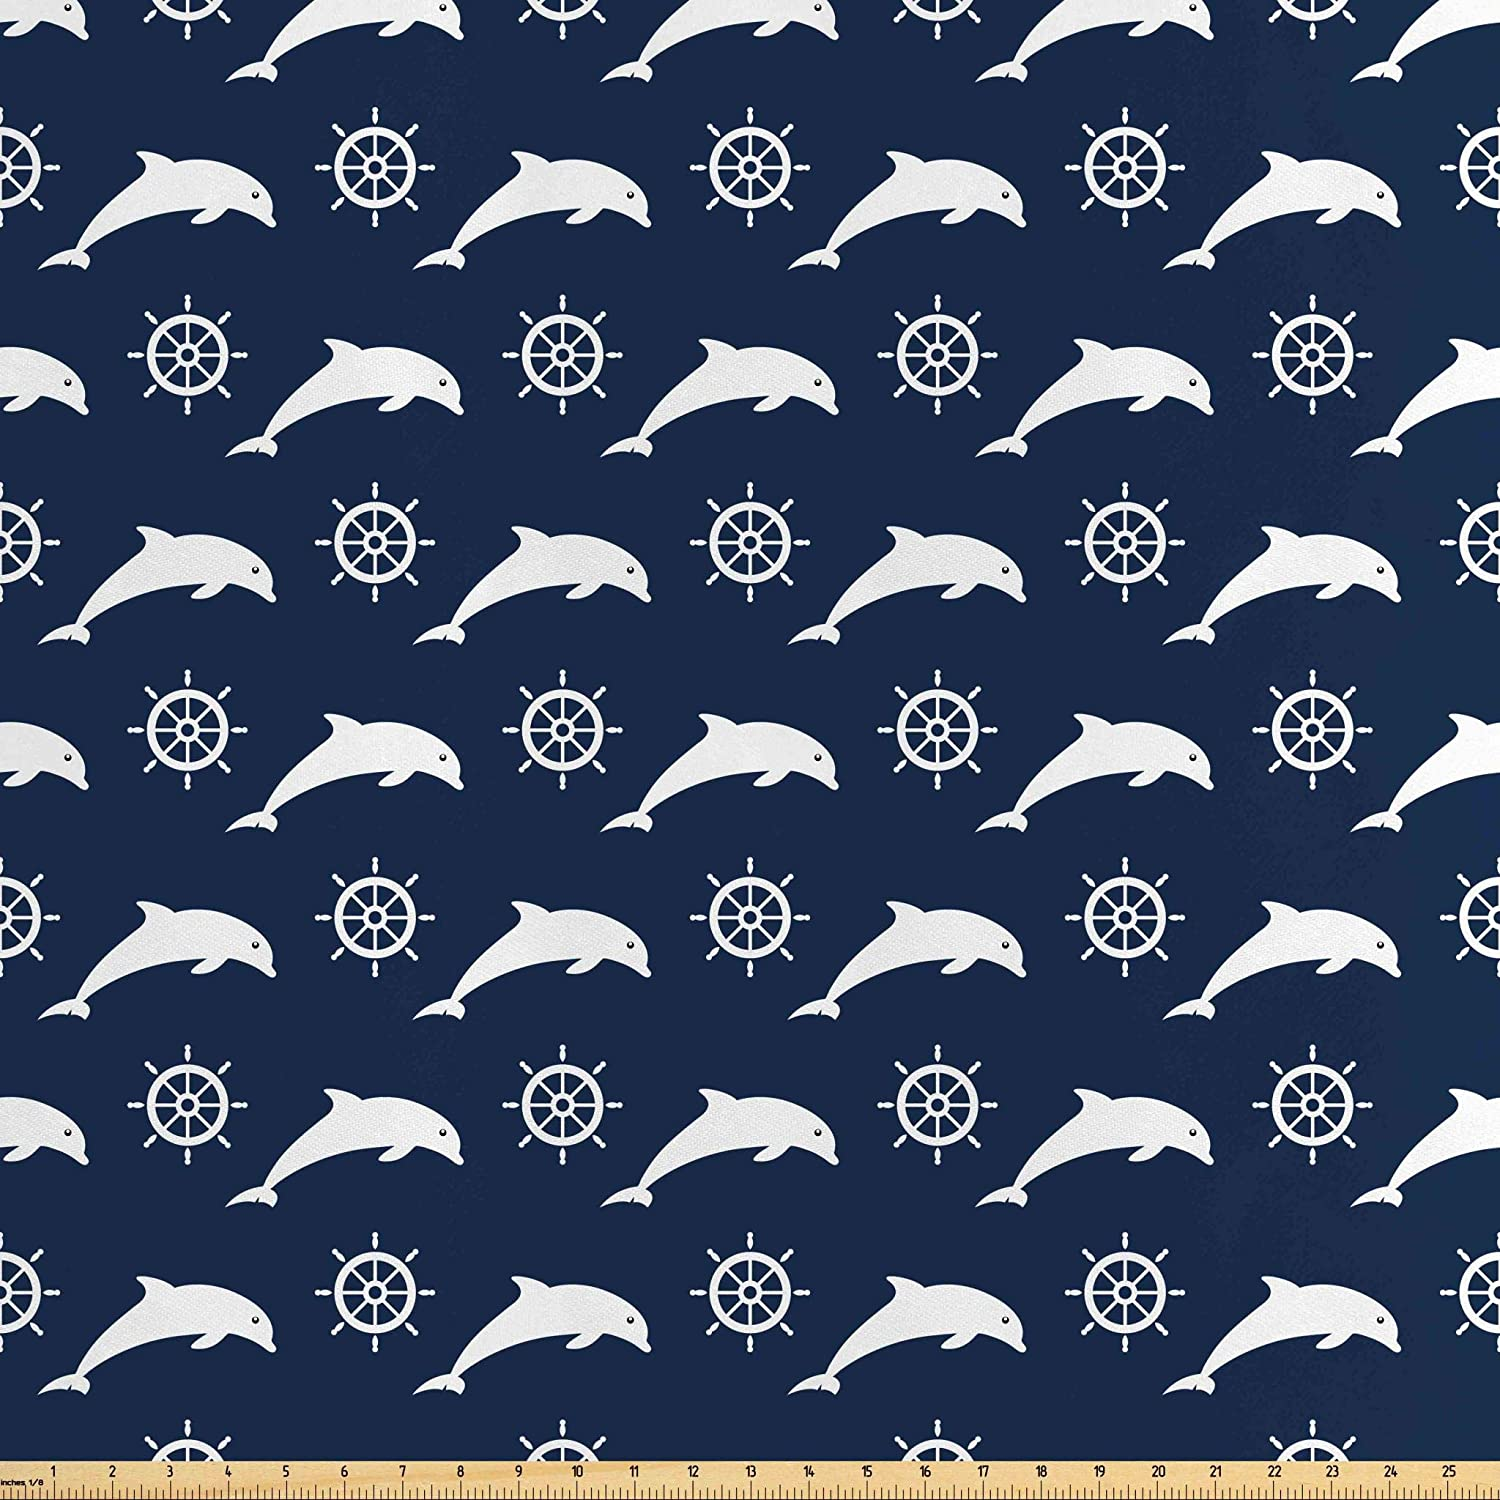 Lunarable Dolphin Fabric by The Yard, Maritime Pattern with Silhouettes of Dolphins and Steering Wheels in White Color, Decorative Satin Fabric for Home Textiles and Crafts, 10 Yards, Night Blue